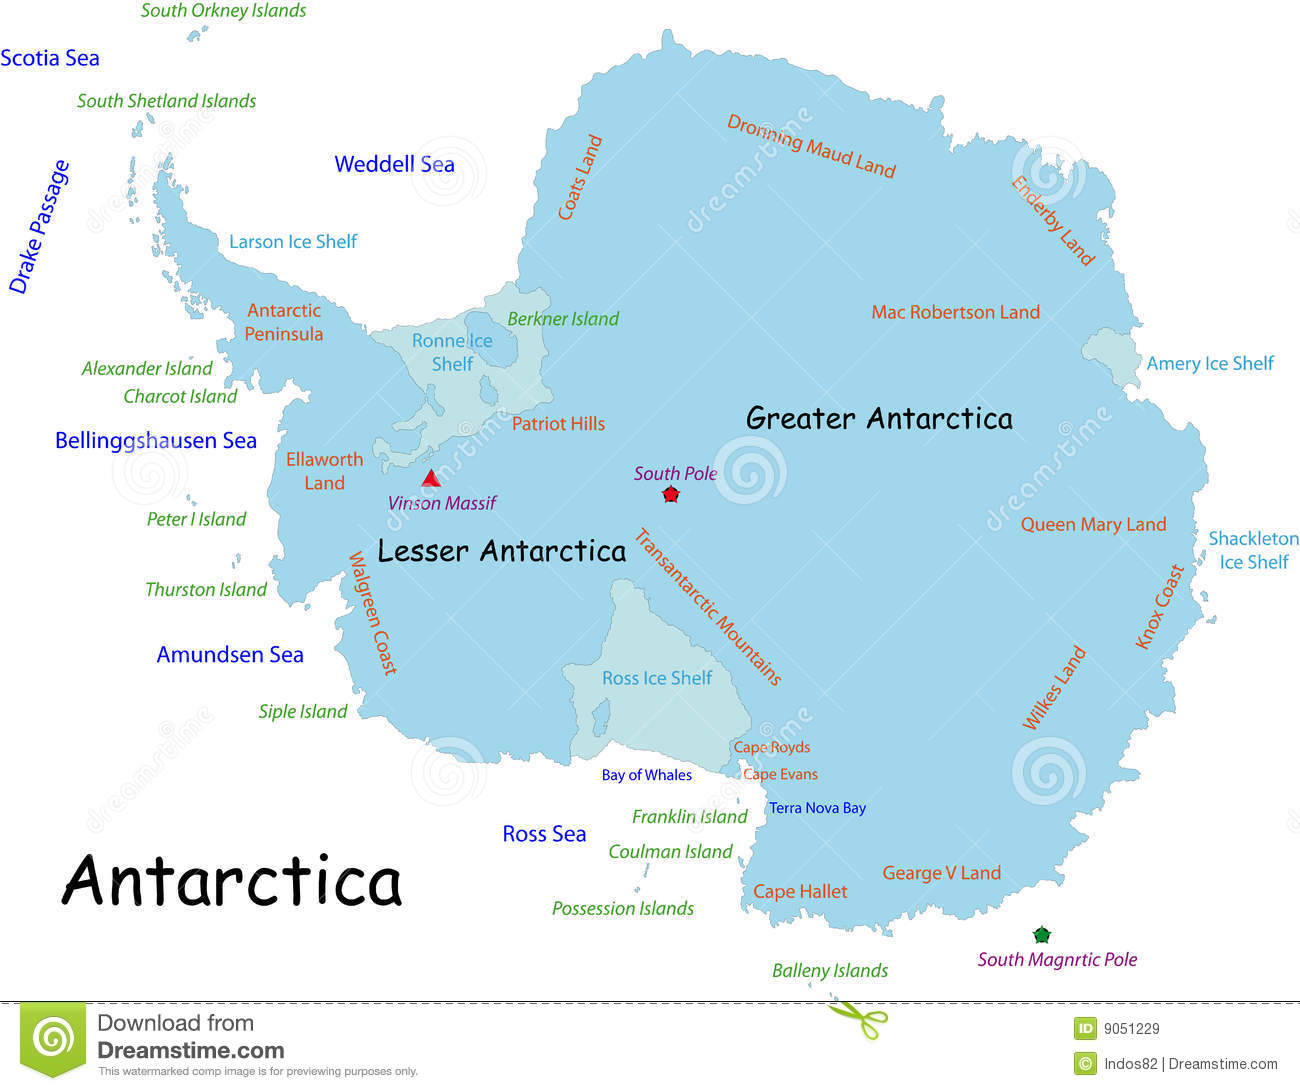 maps of antarctica with Royalty Vrije Stock Afbeeldingen De Kaart Van Antarctica Image9051229 on 48906210 further File DVa Reference 3 additionally Az additionally Christchurch in addition Georgia Flag.